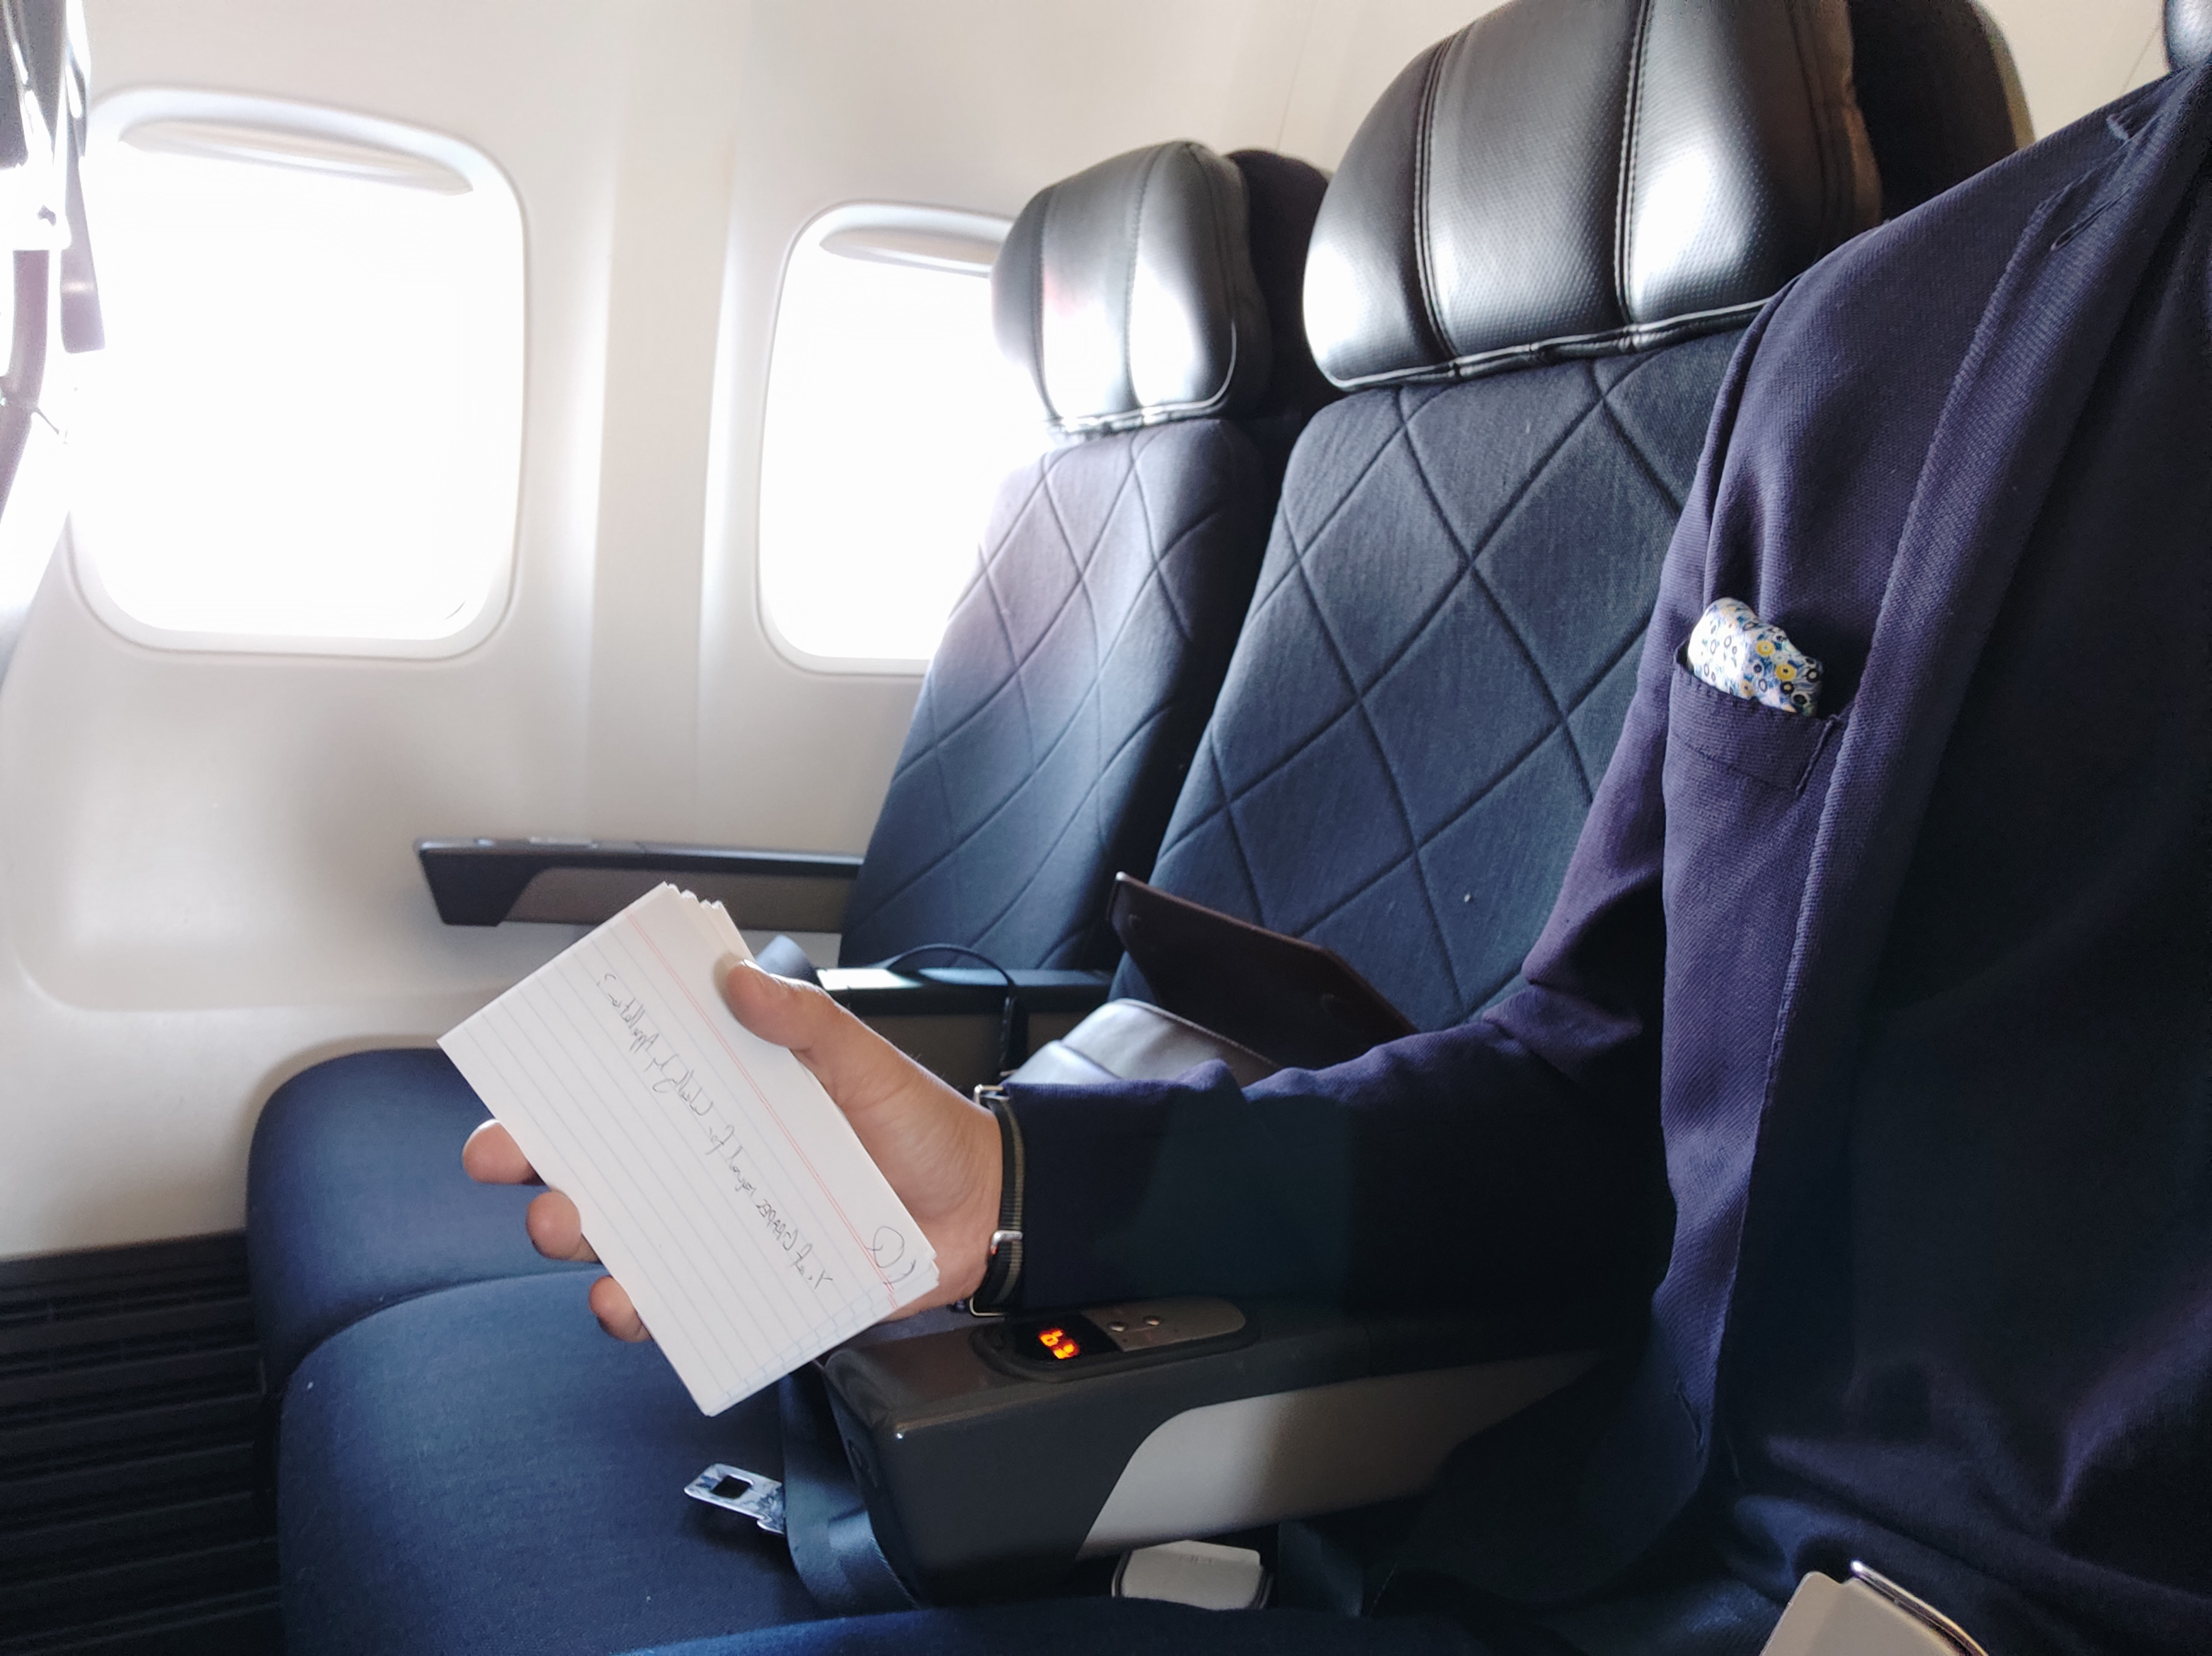 Flashcards on the flight to Melbourne.